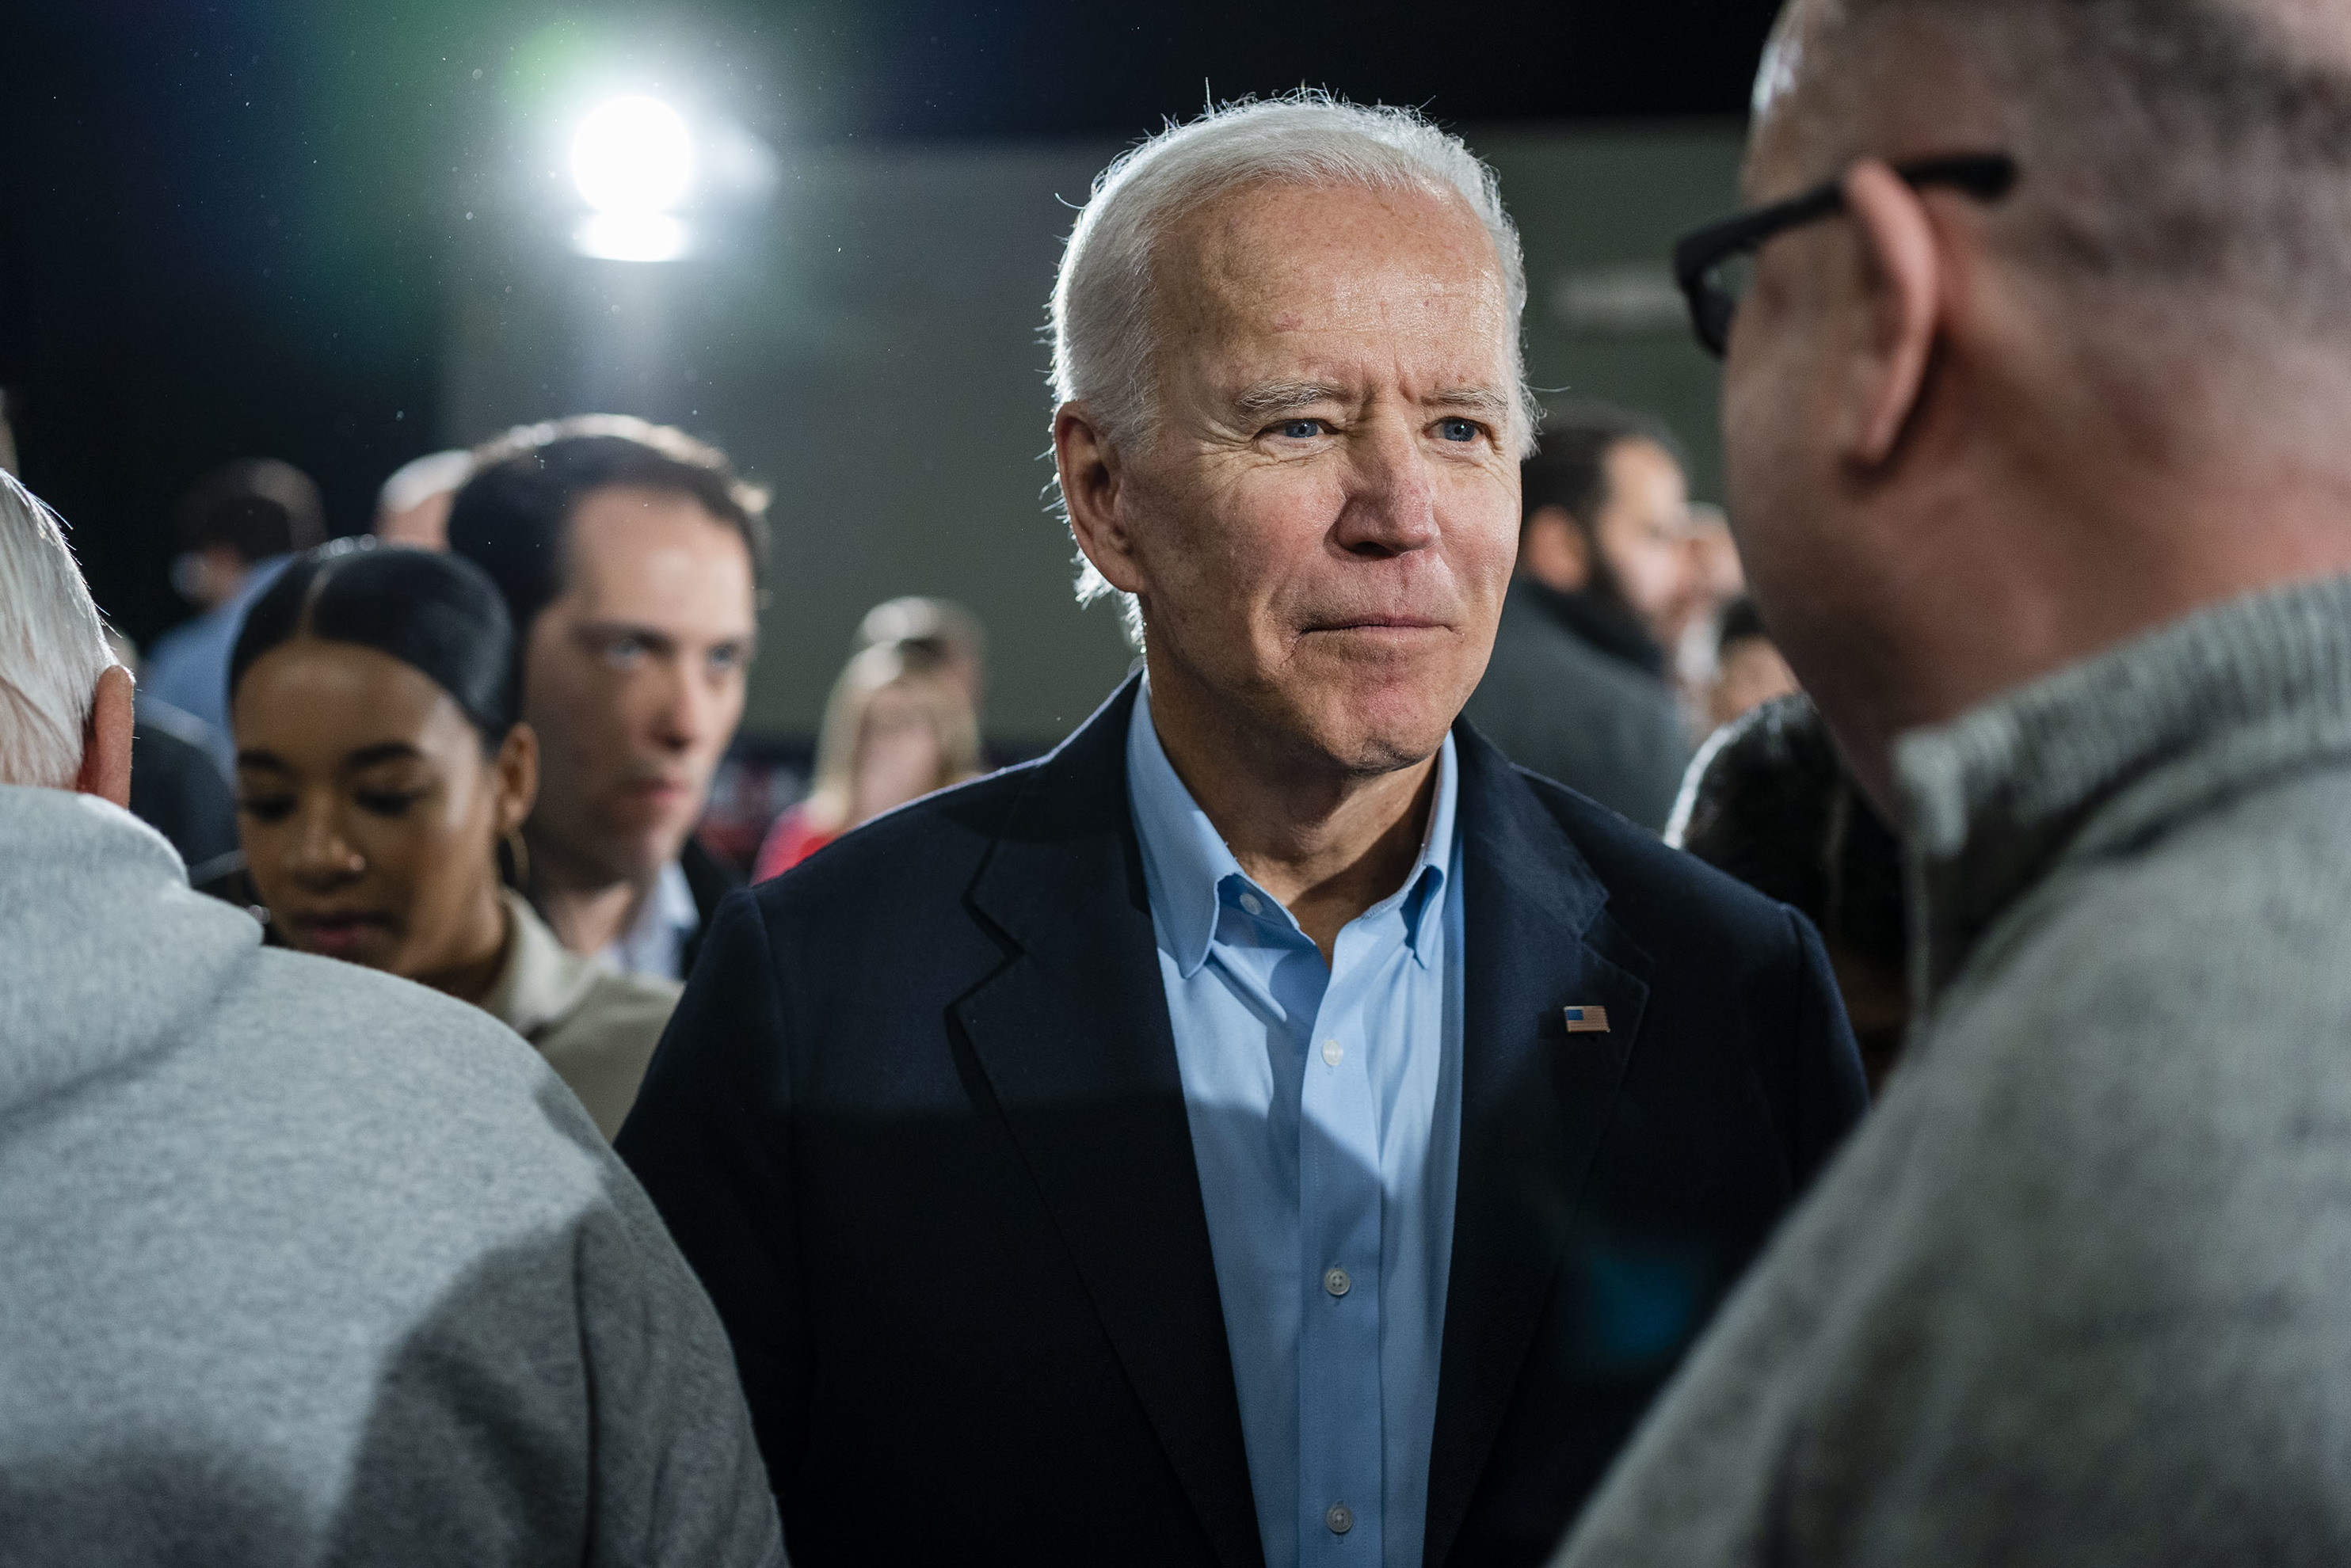 Biden Doubles Down On Heated Town Hall Where He Called Voter A 'Damn Liar'